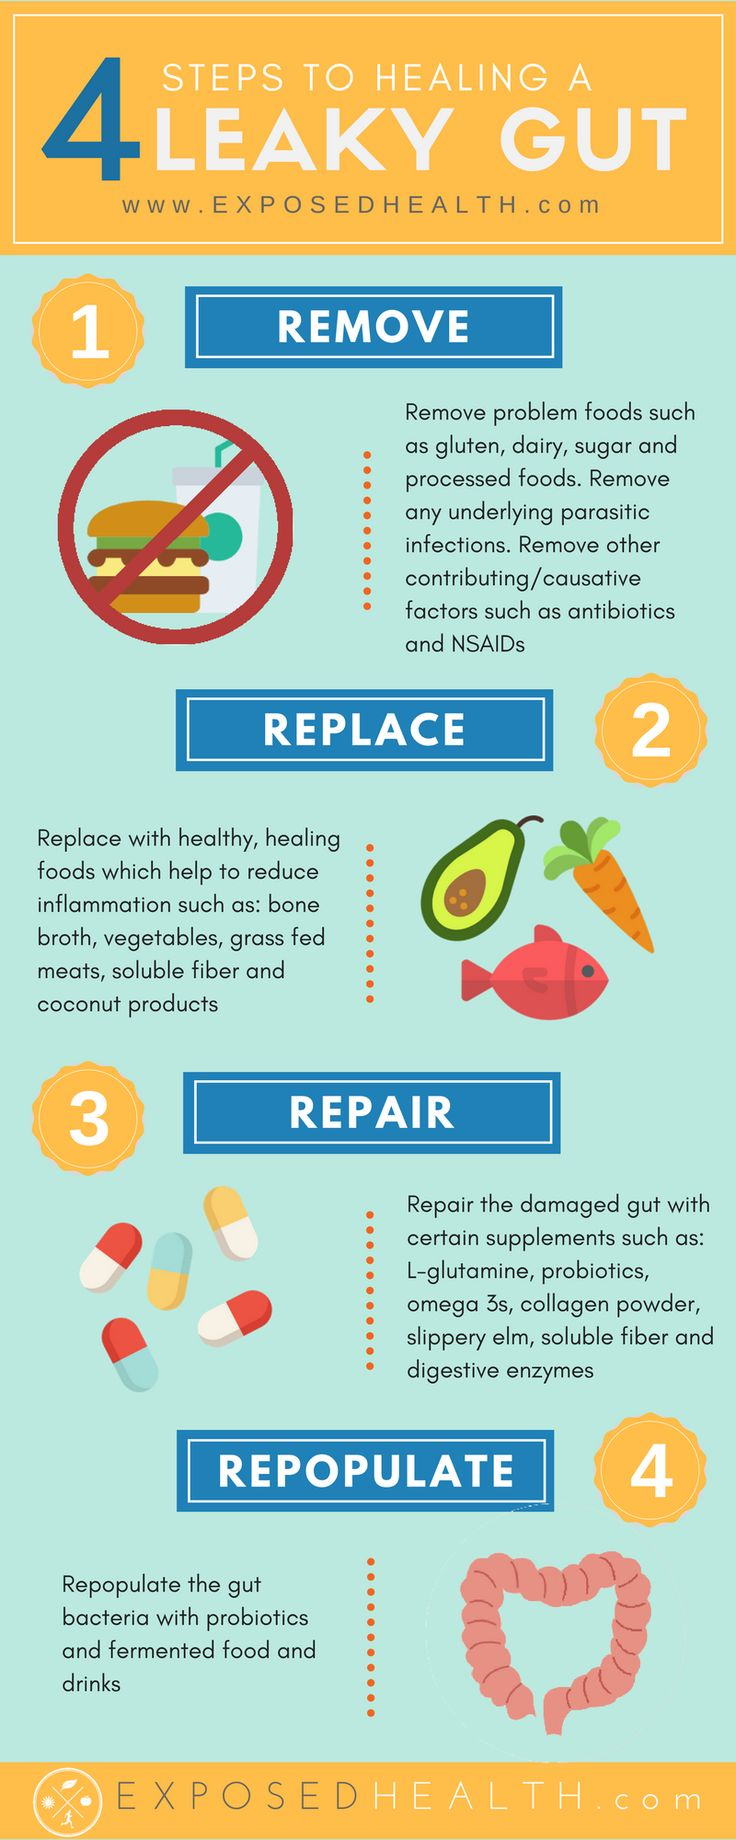 How to heal a leaky gut